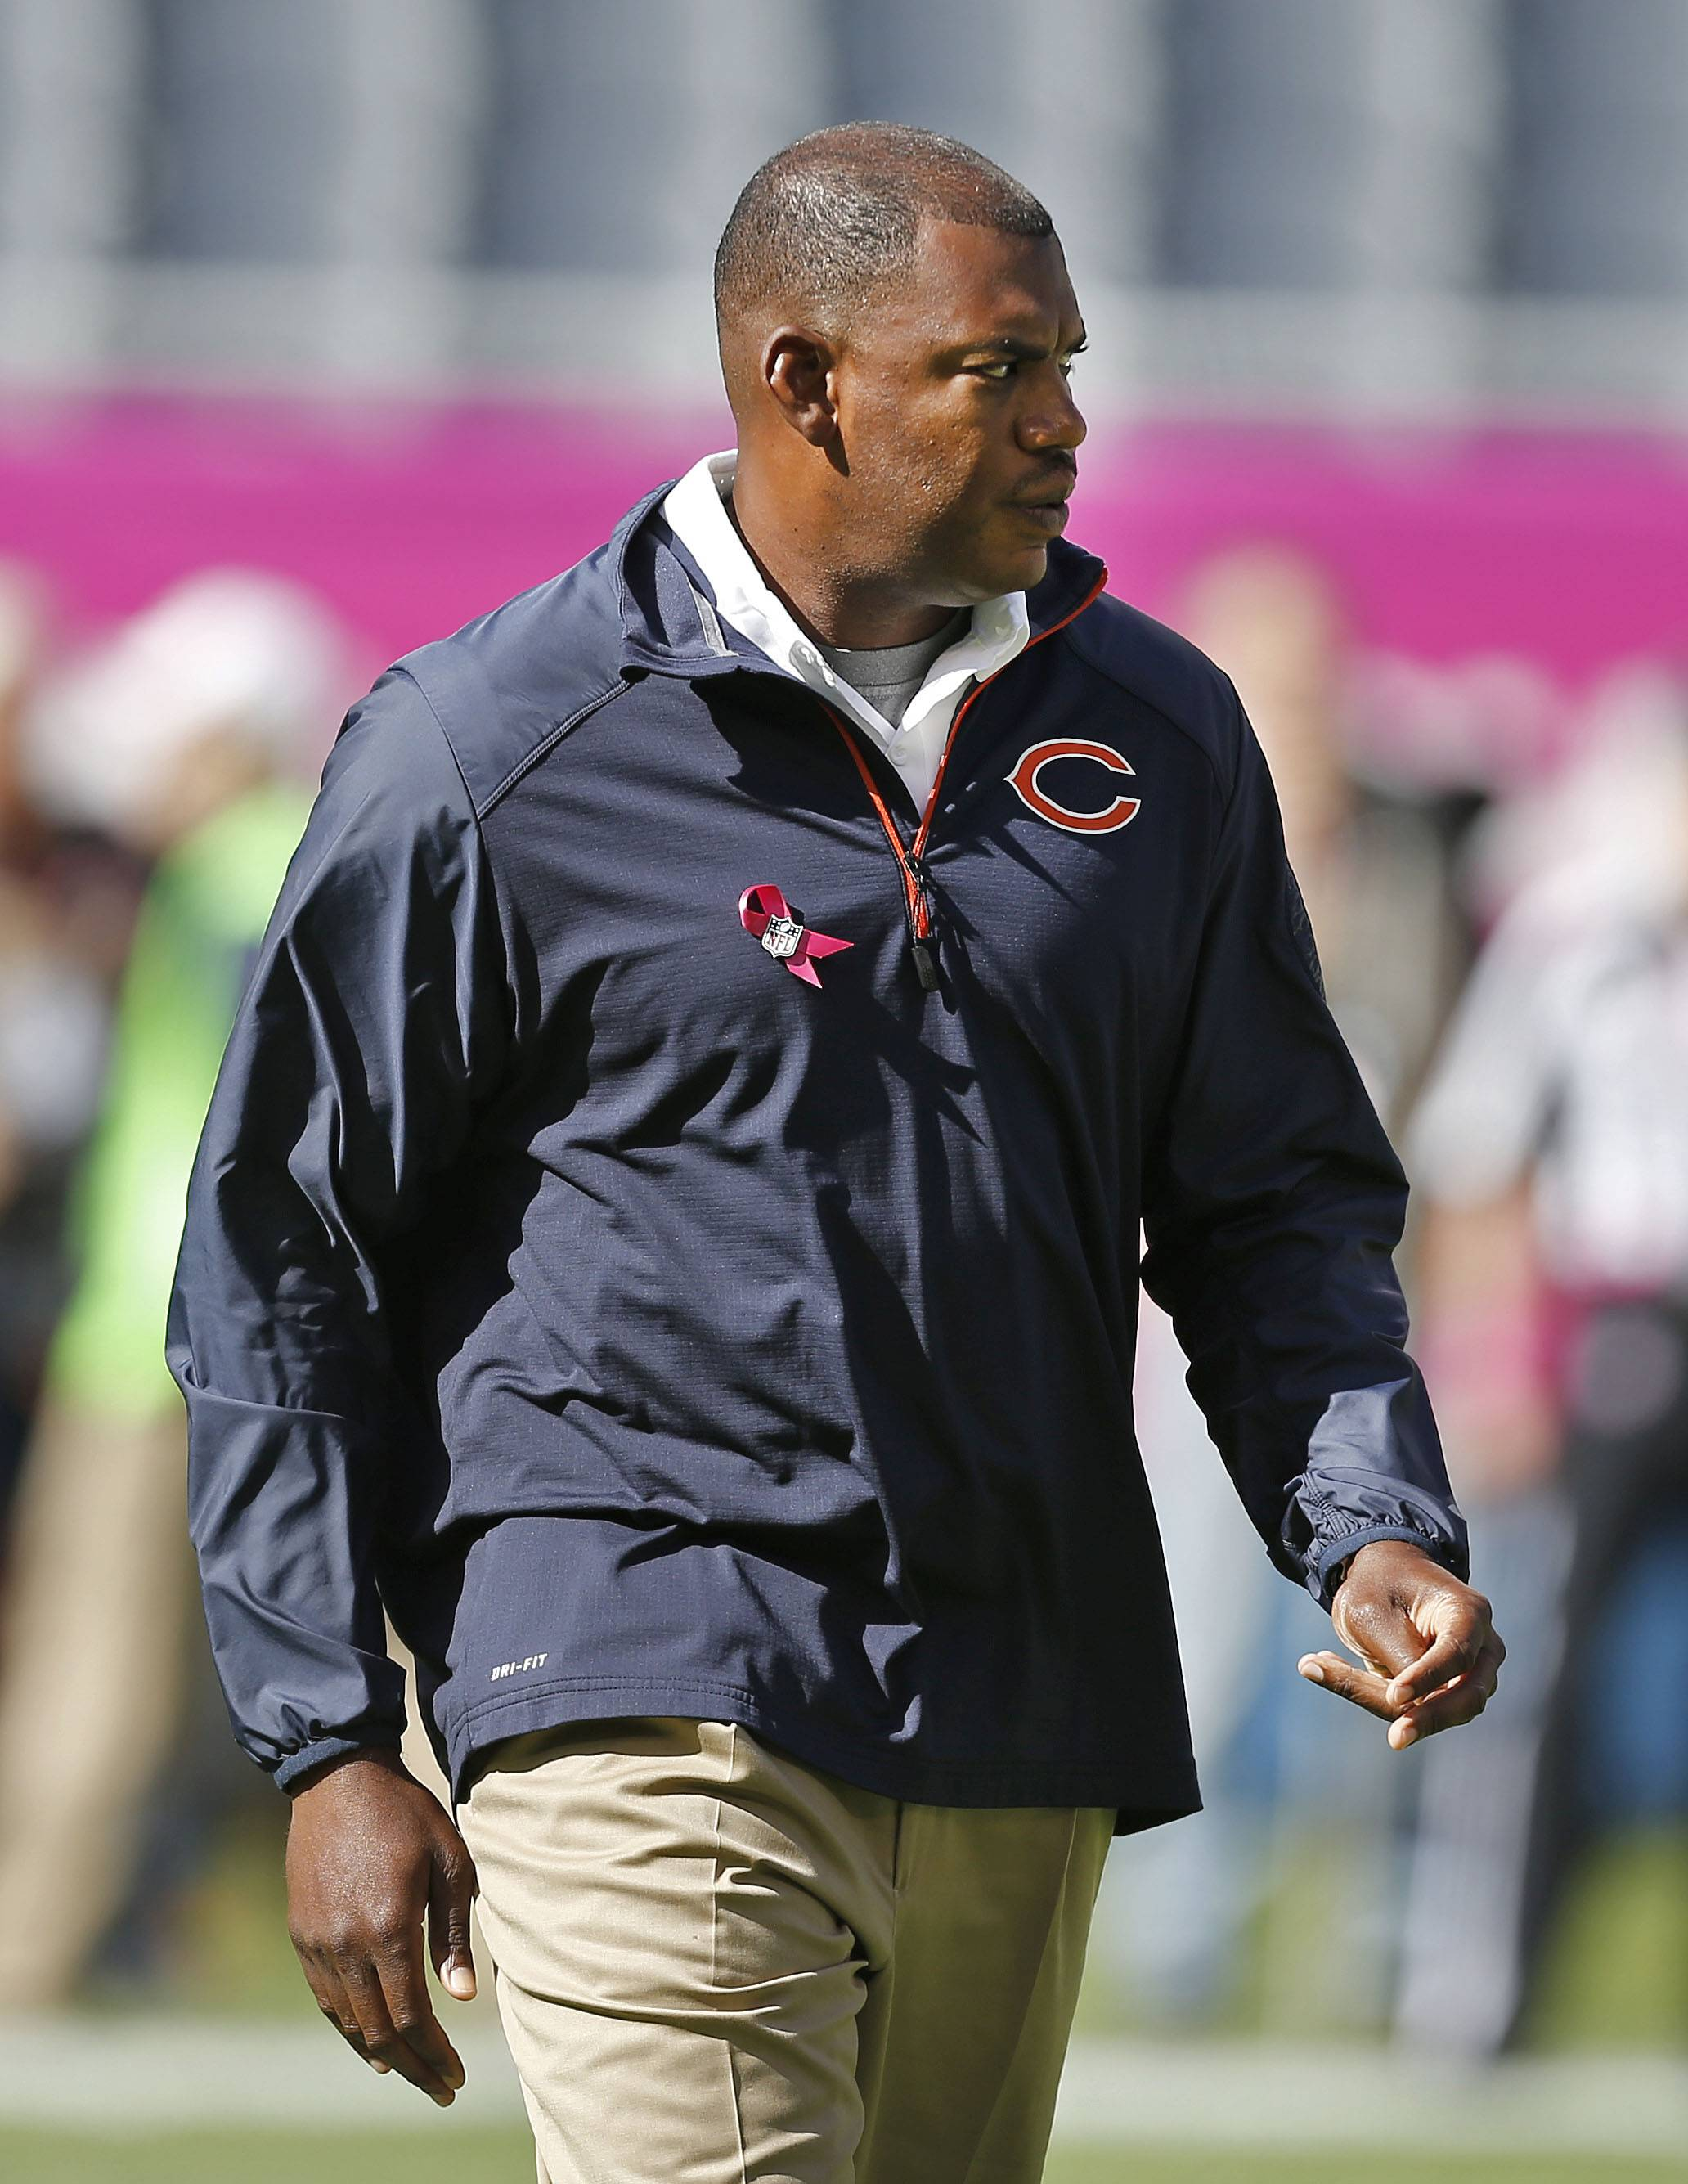 Bears defensive coordinator Mel Tucker said he thinks the line play this season will get a big boost from the addition of experienced veterans.